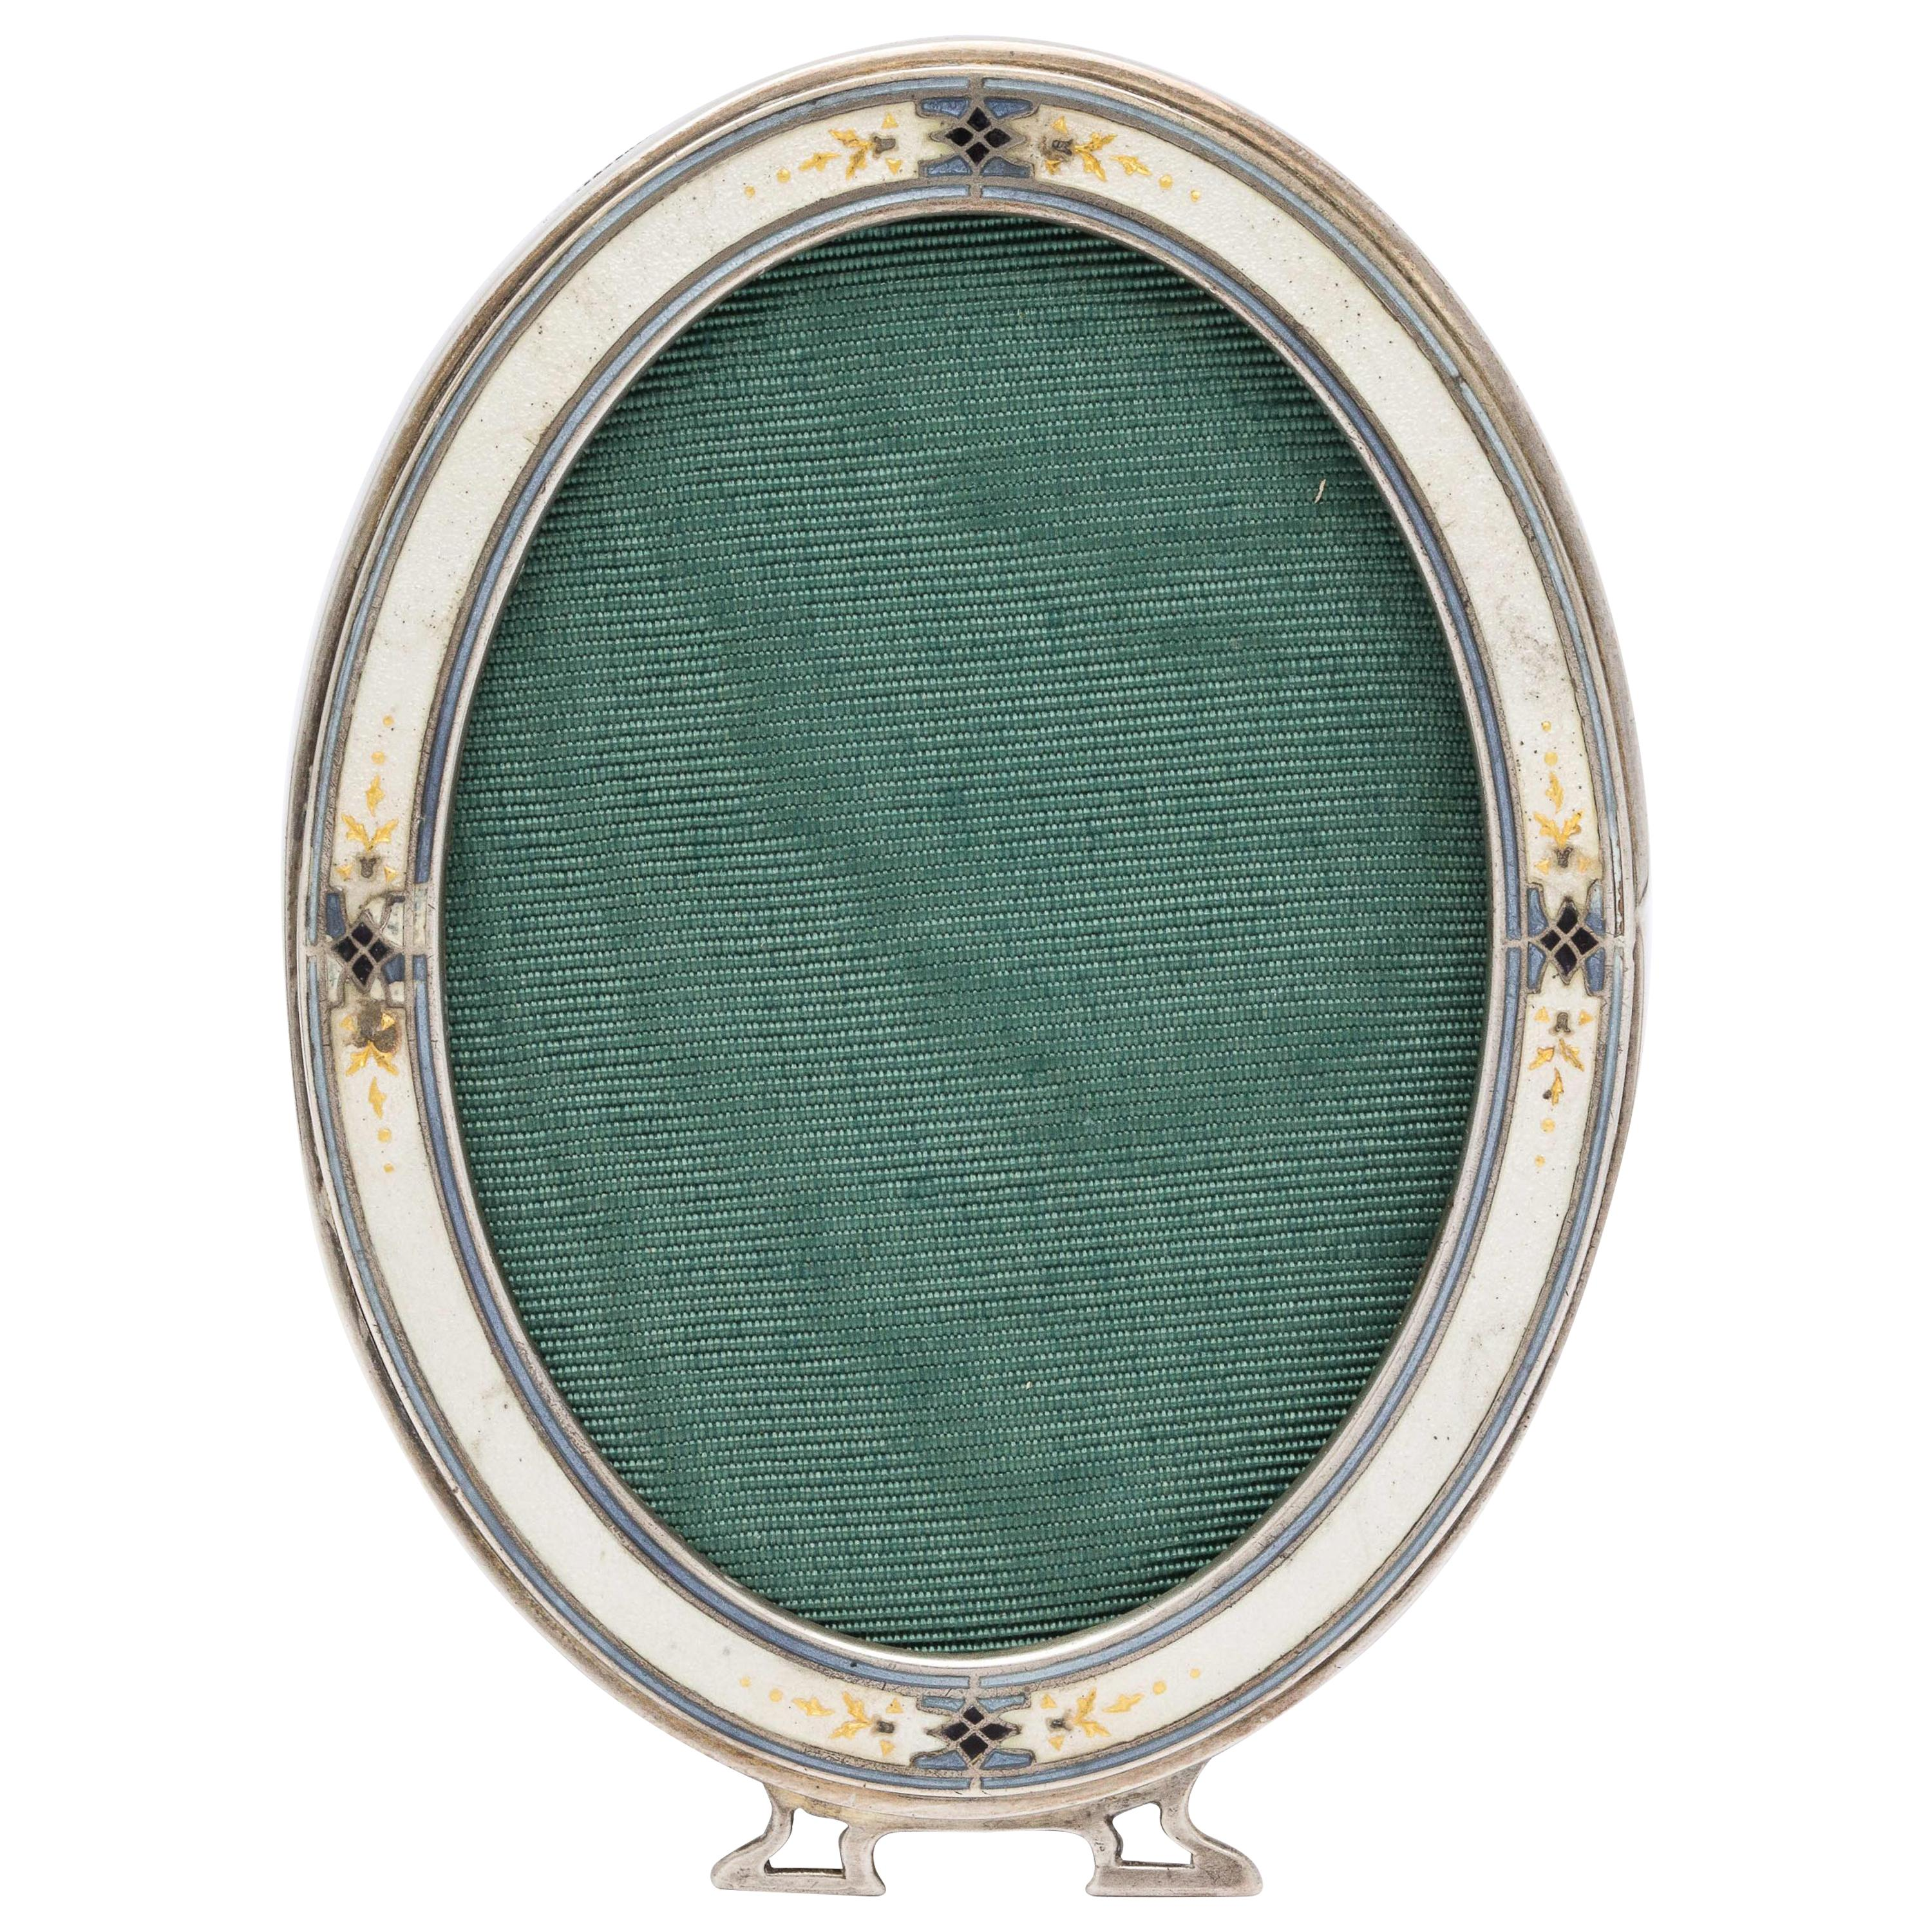 Rare Art Deco Sterling Silver and Guilloche Enamel Picture Frame by Blackinton